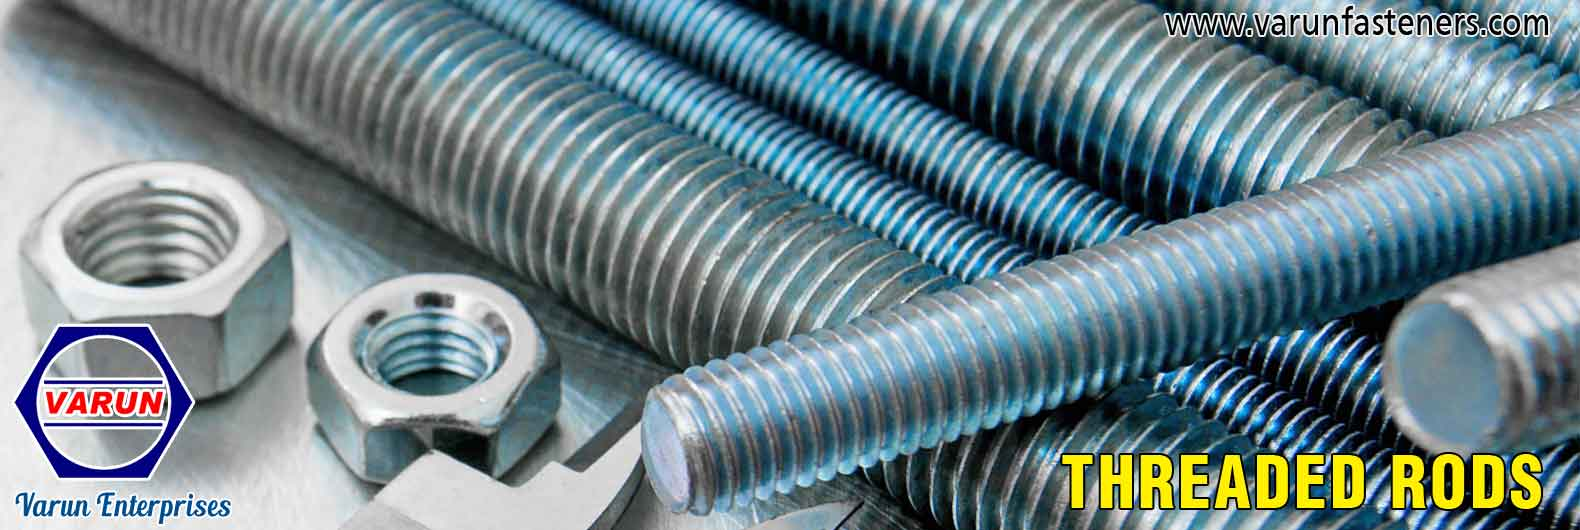 Threaded Rods Thread Bars Coil Rod manufacturers exporters suppliers in India